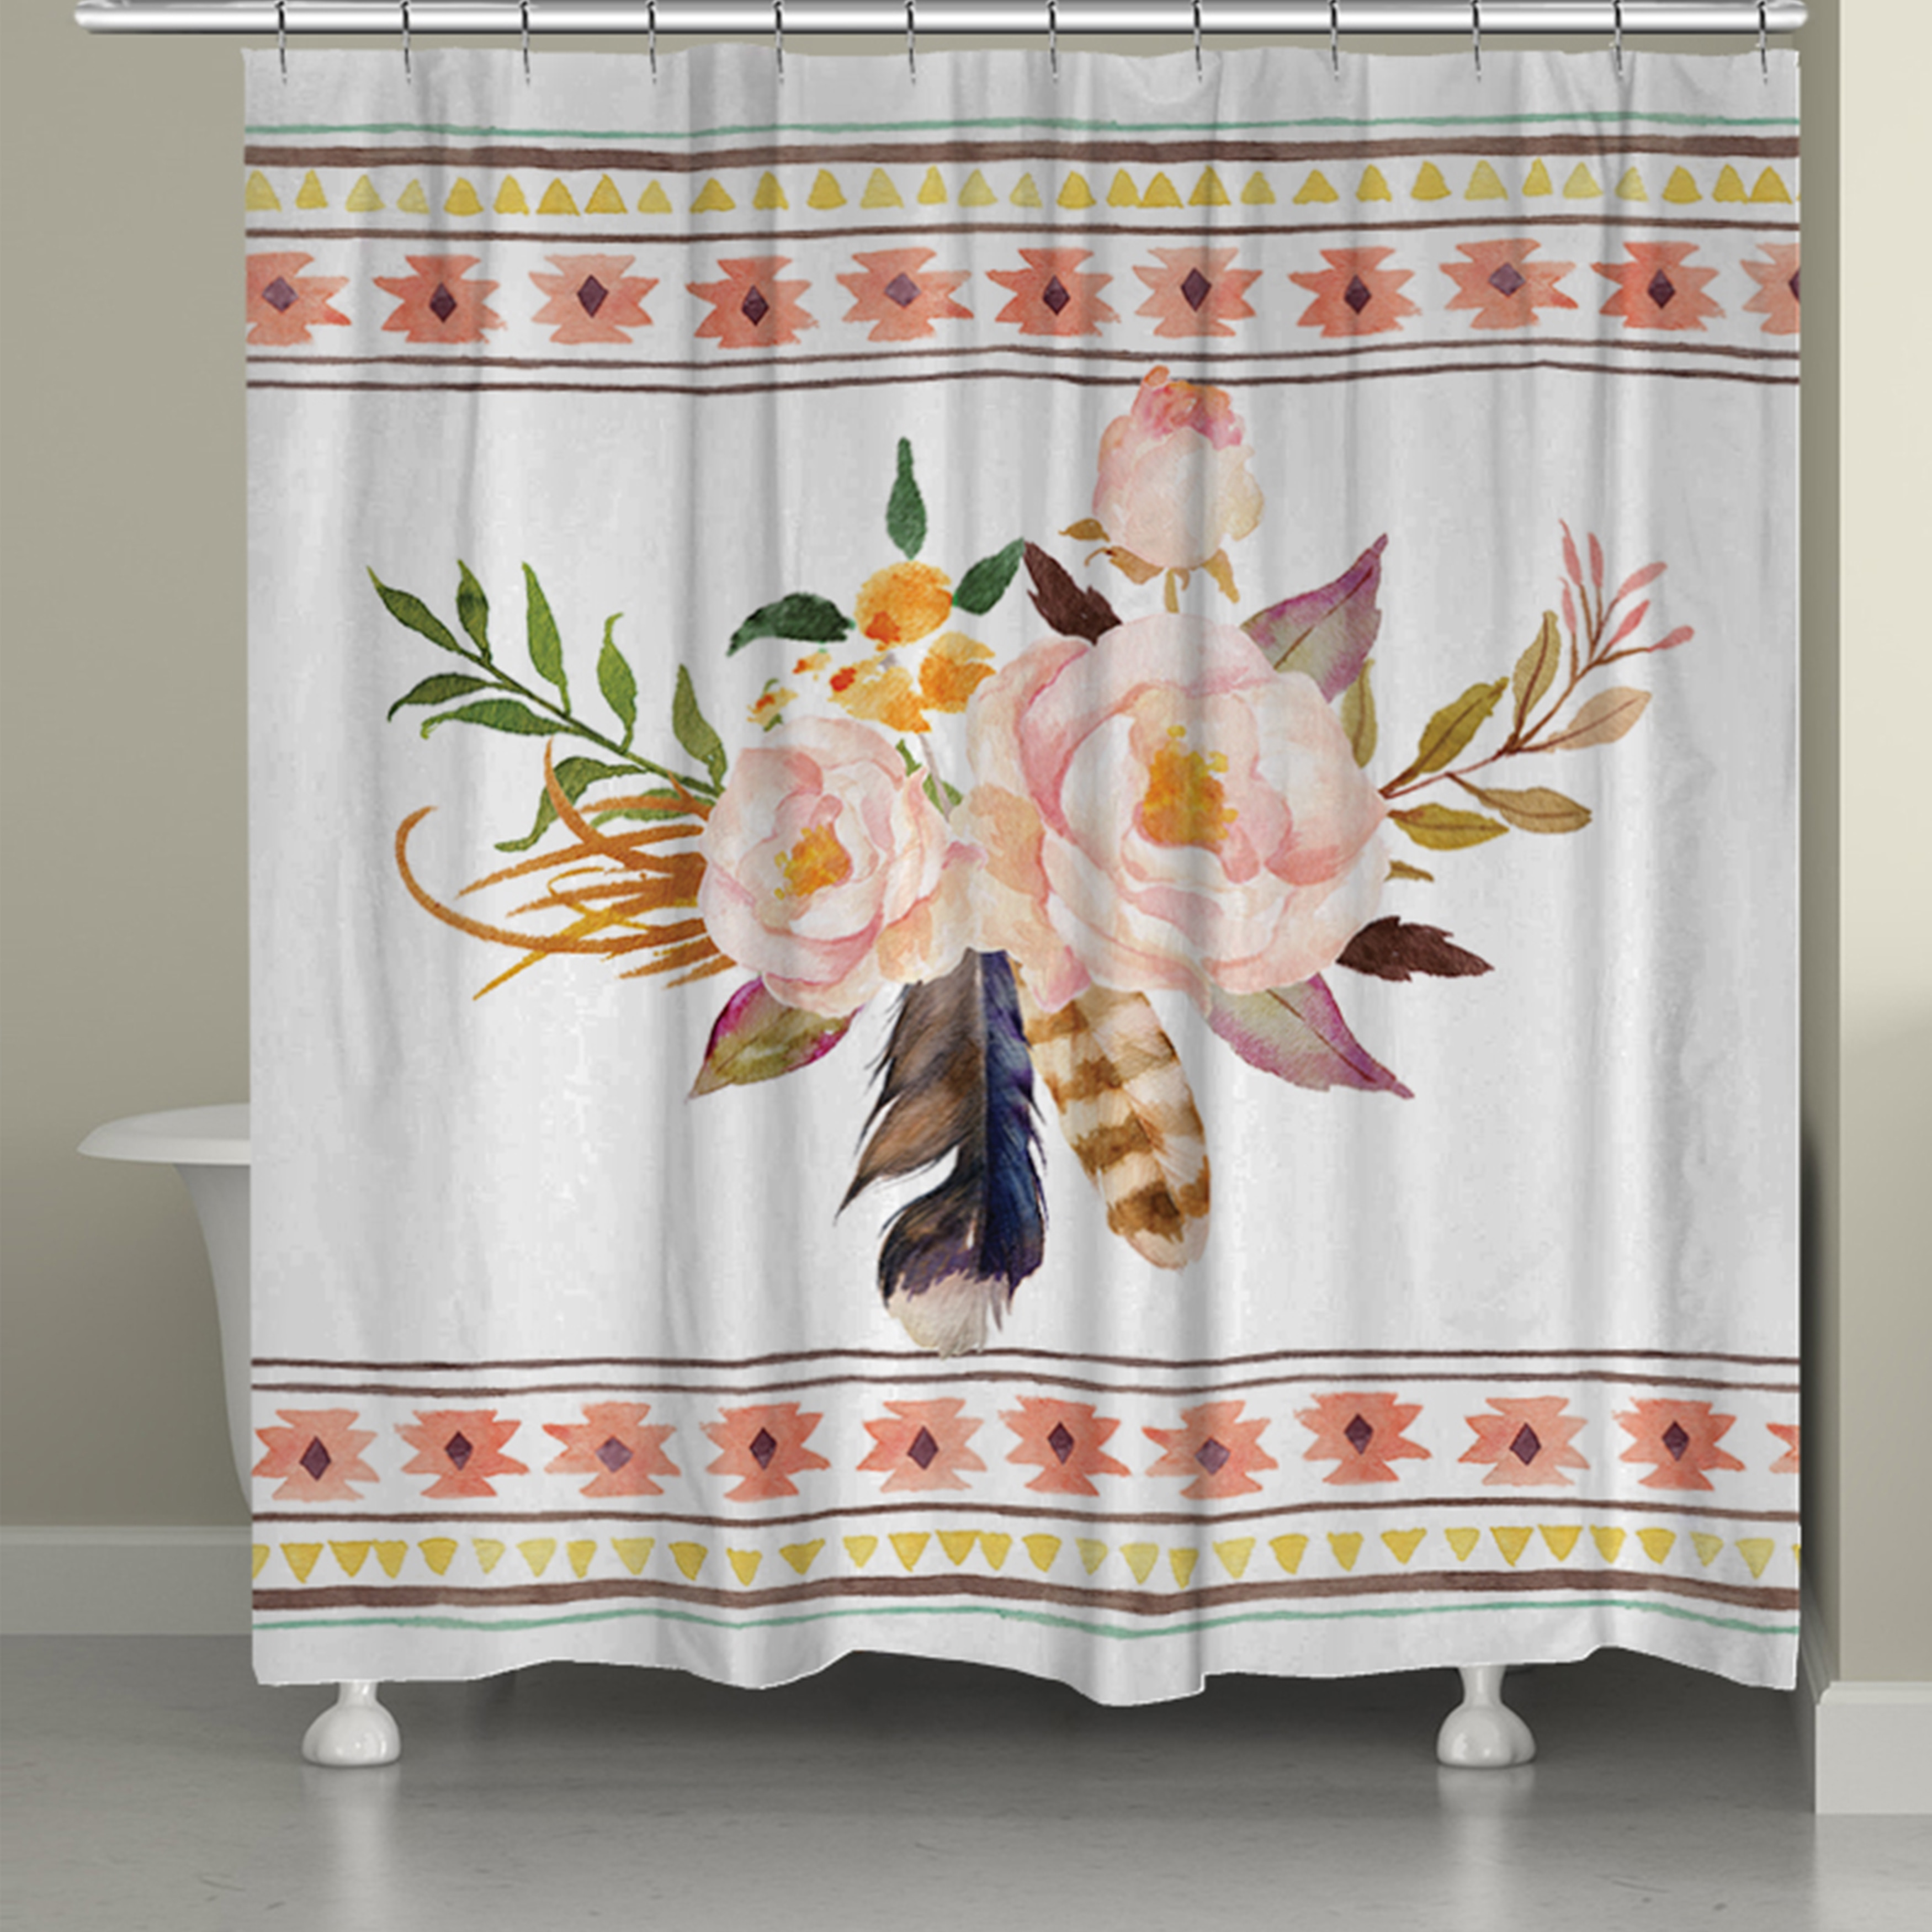 Laural Home Bohemian Flowers Shower Curtain (71 Inch X 74 Inch)   Free  Shipping Today   Overstock.com   17740091